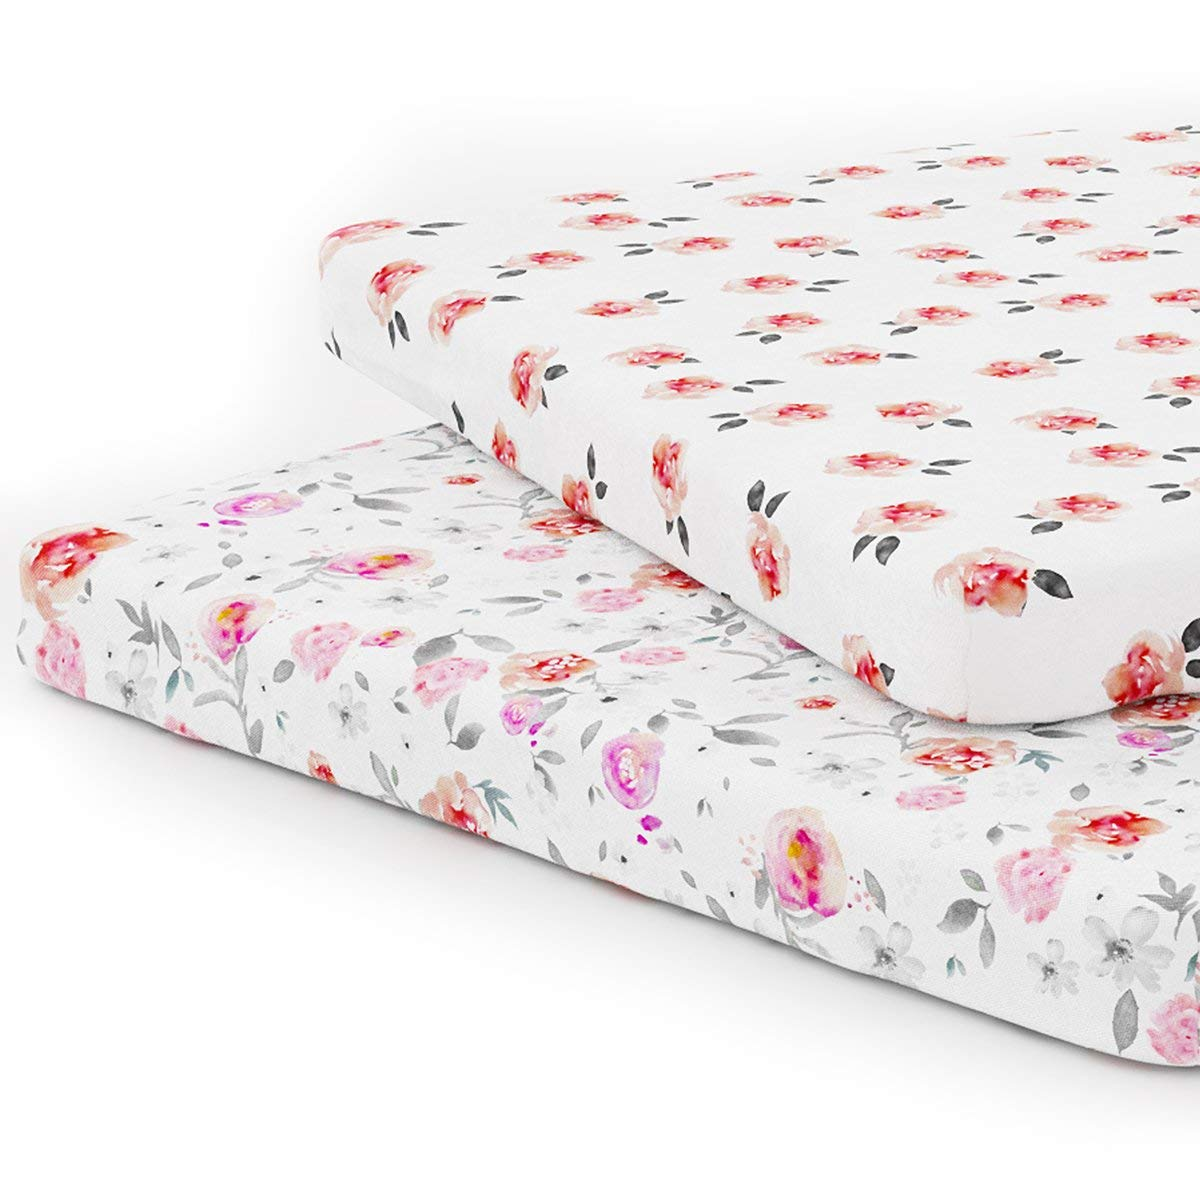 Pack n Play Playard Sheet Set - Portable Mini Crib Mattress Pad Sheets - Convertible Mattress Cover - Stretchy Fitted Jersey Cotton Will Fit Any Playard Size - Soft Baby Safe Fabric for Girls - Petal